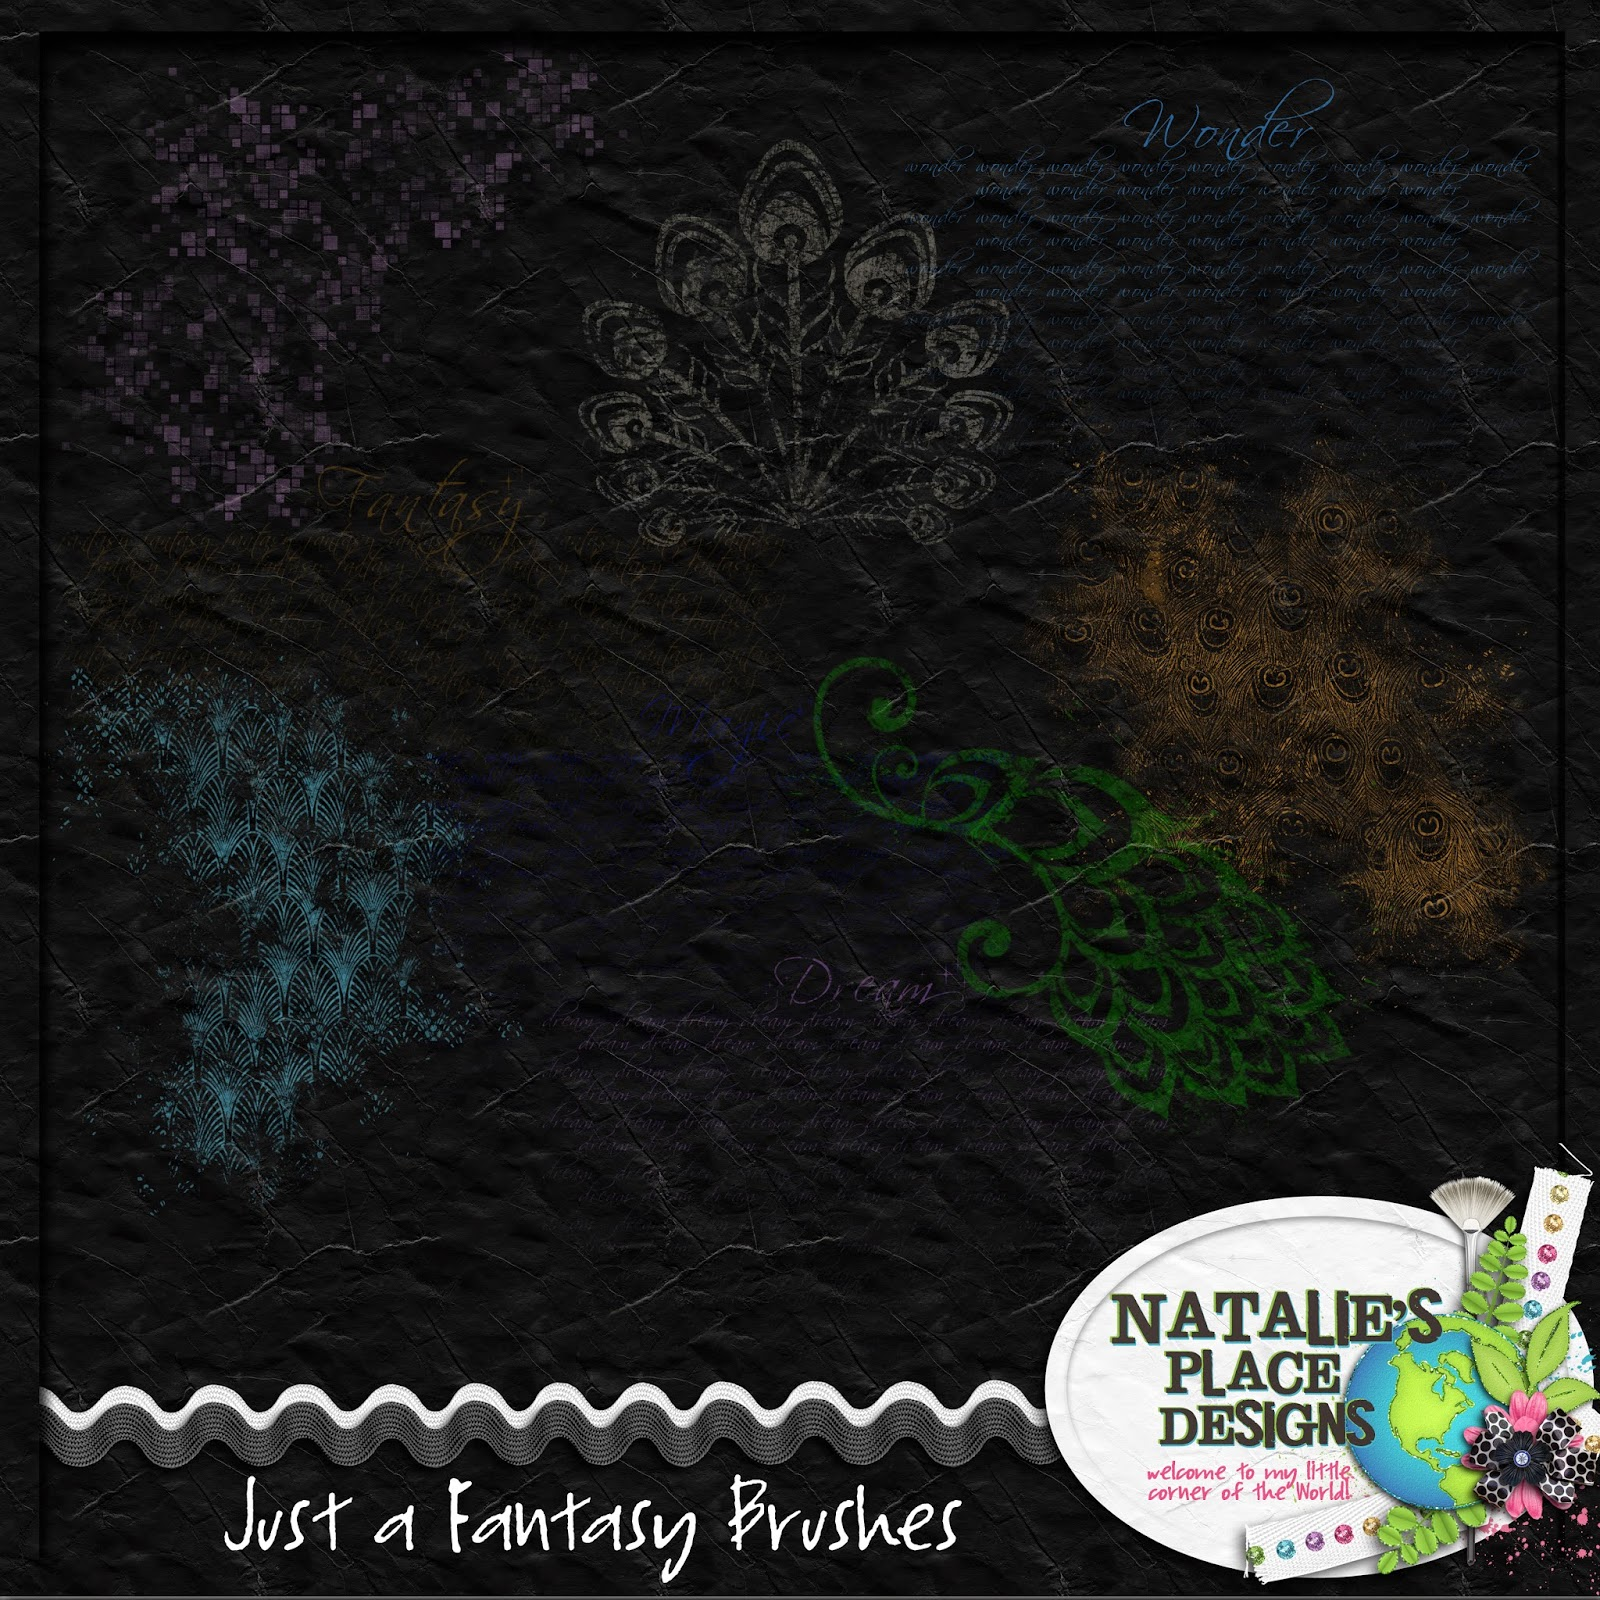 http://www.nataliesplacedesigns.com/store/p468/Just_a_Fanatsy_Brushes%2FStamps.html